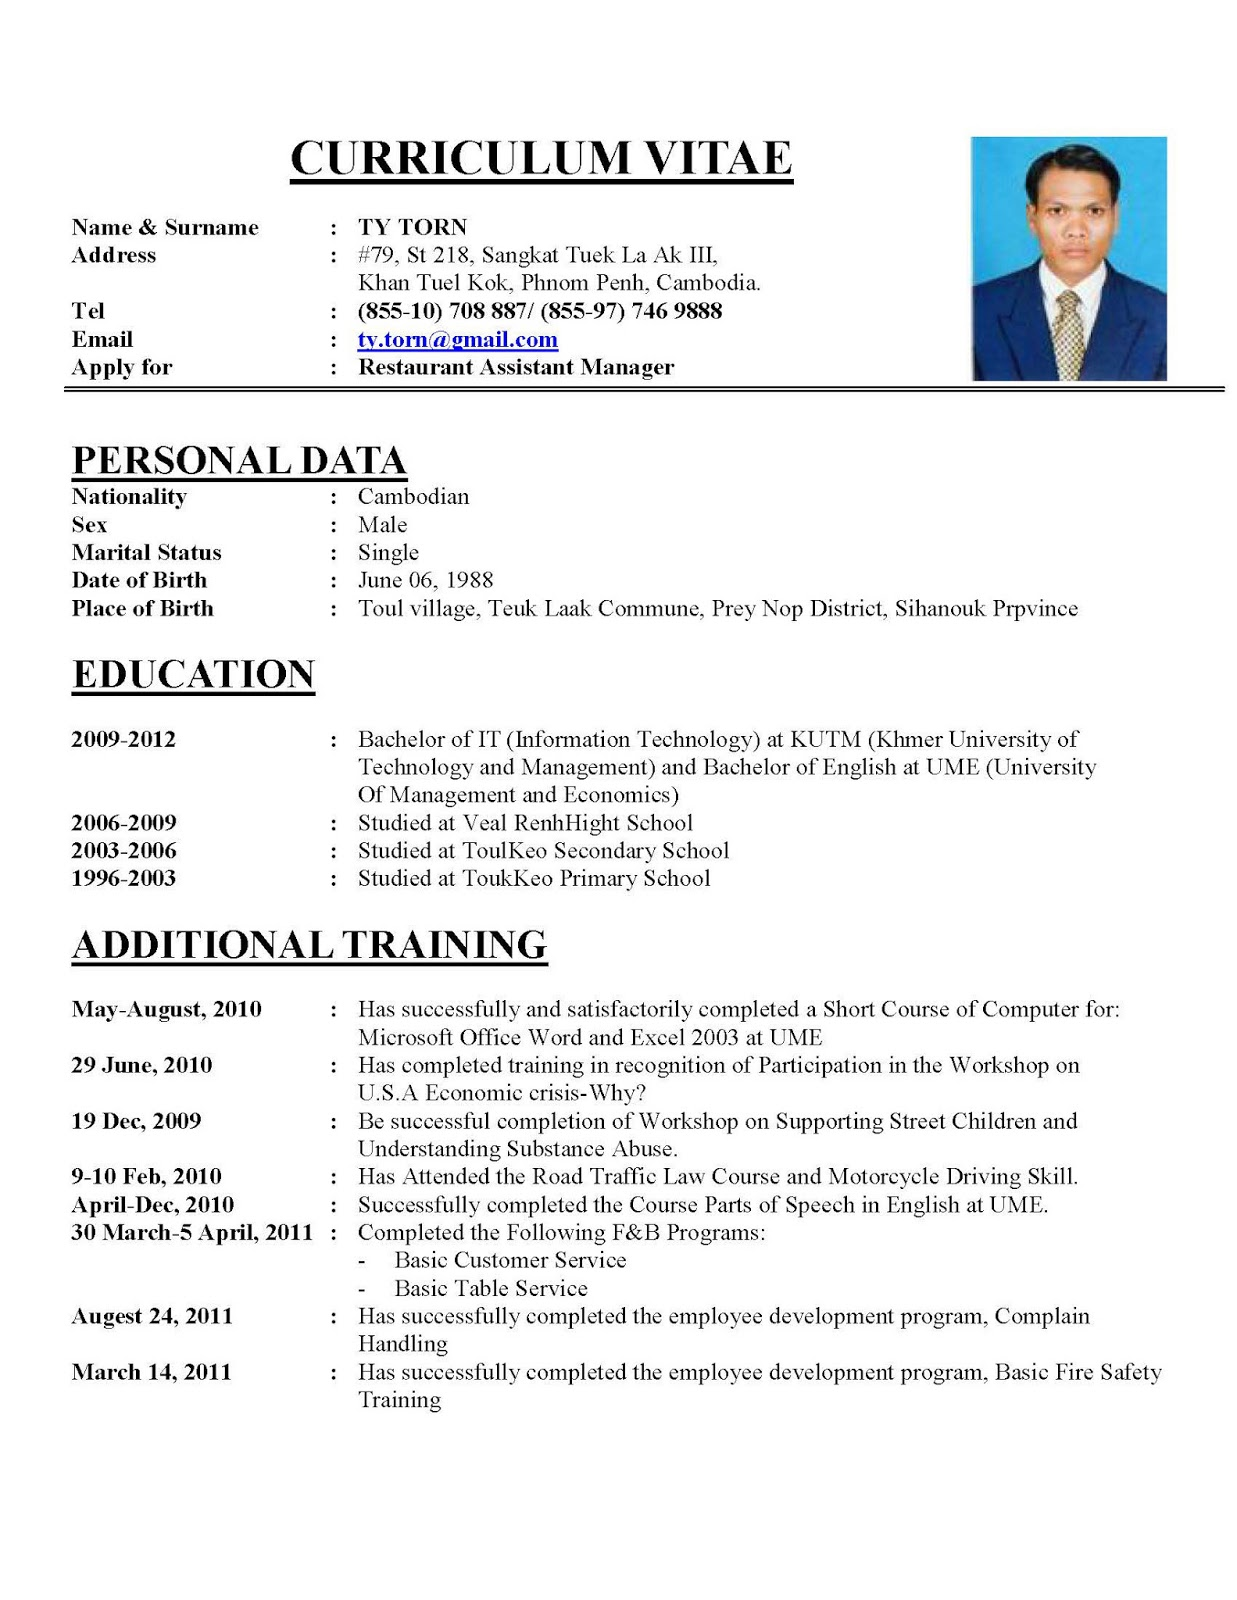 resume cv sales india sample resume resume free templates free creative resume templates for mac free